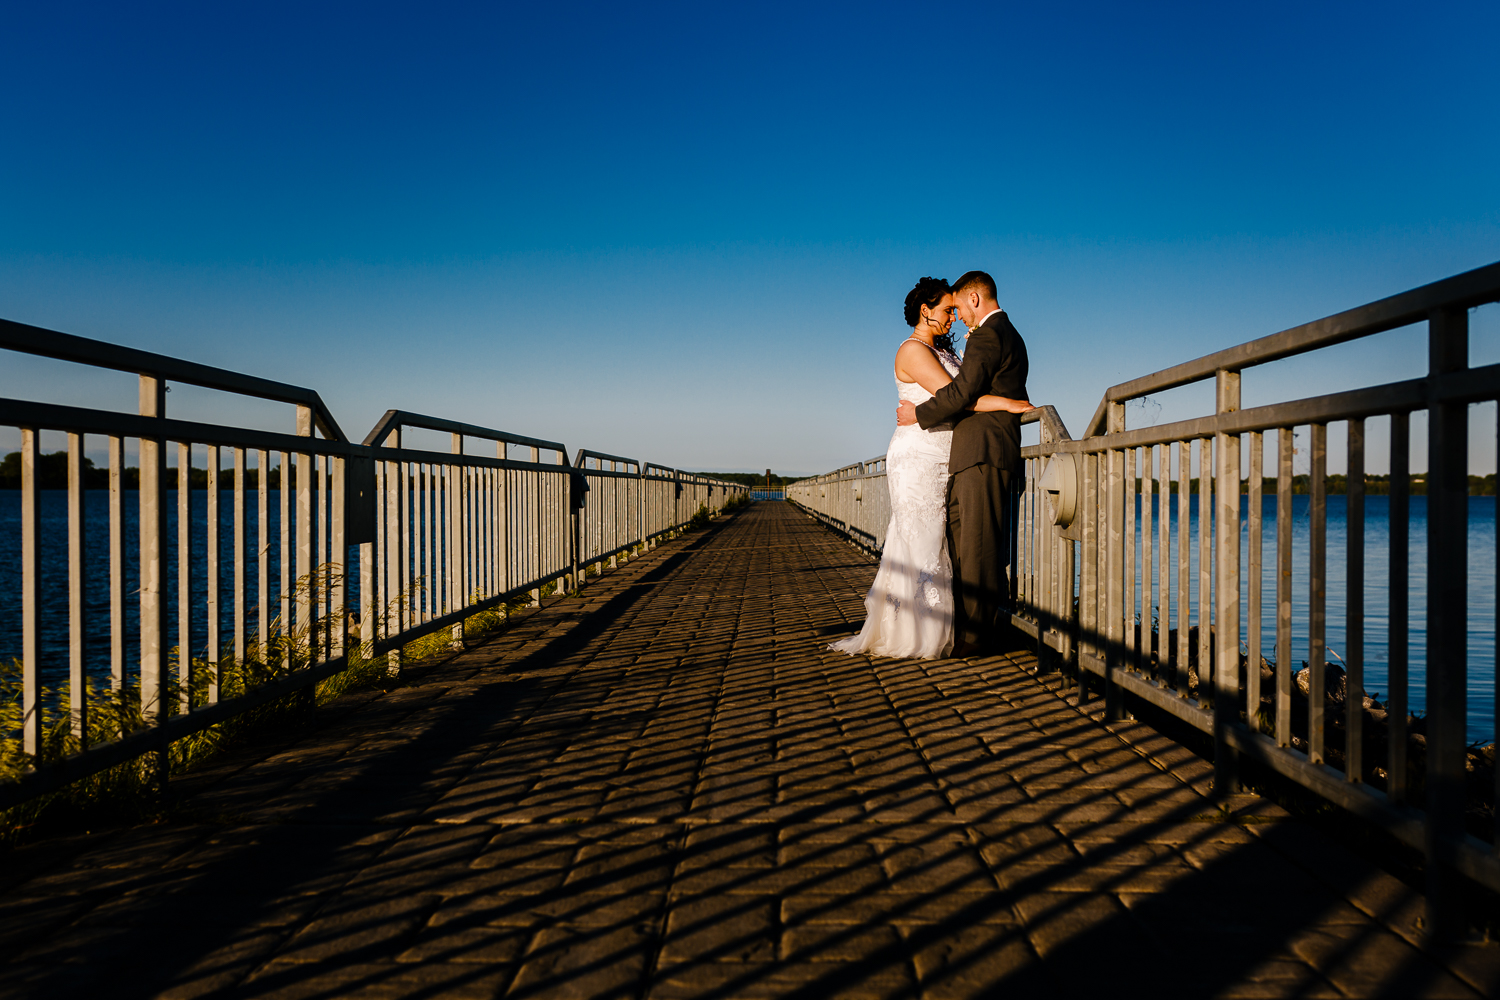 An image of the bride and groom on a pier at sunset. They are facing each other with their forheads touching.